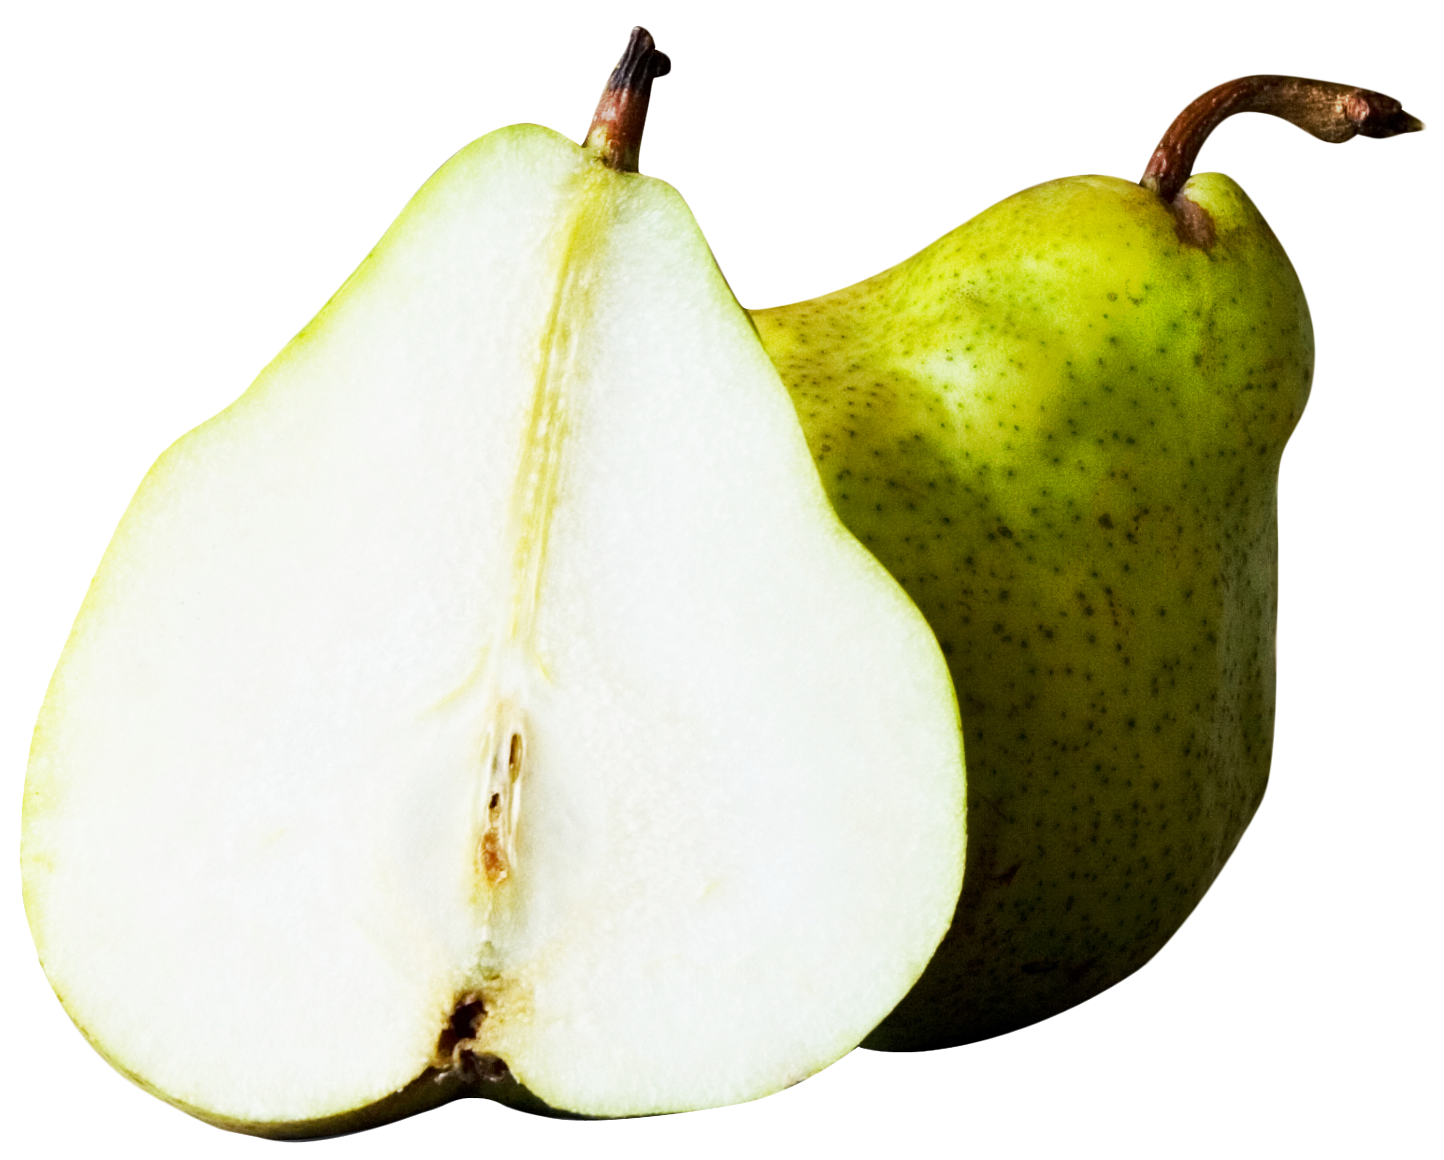 Pear PNG - 8928